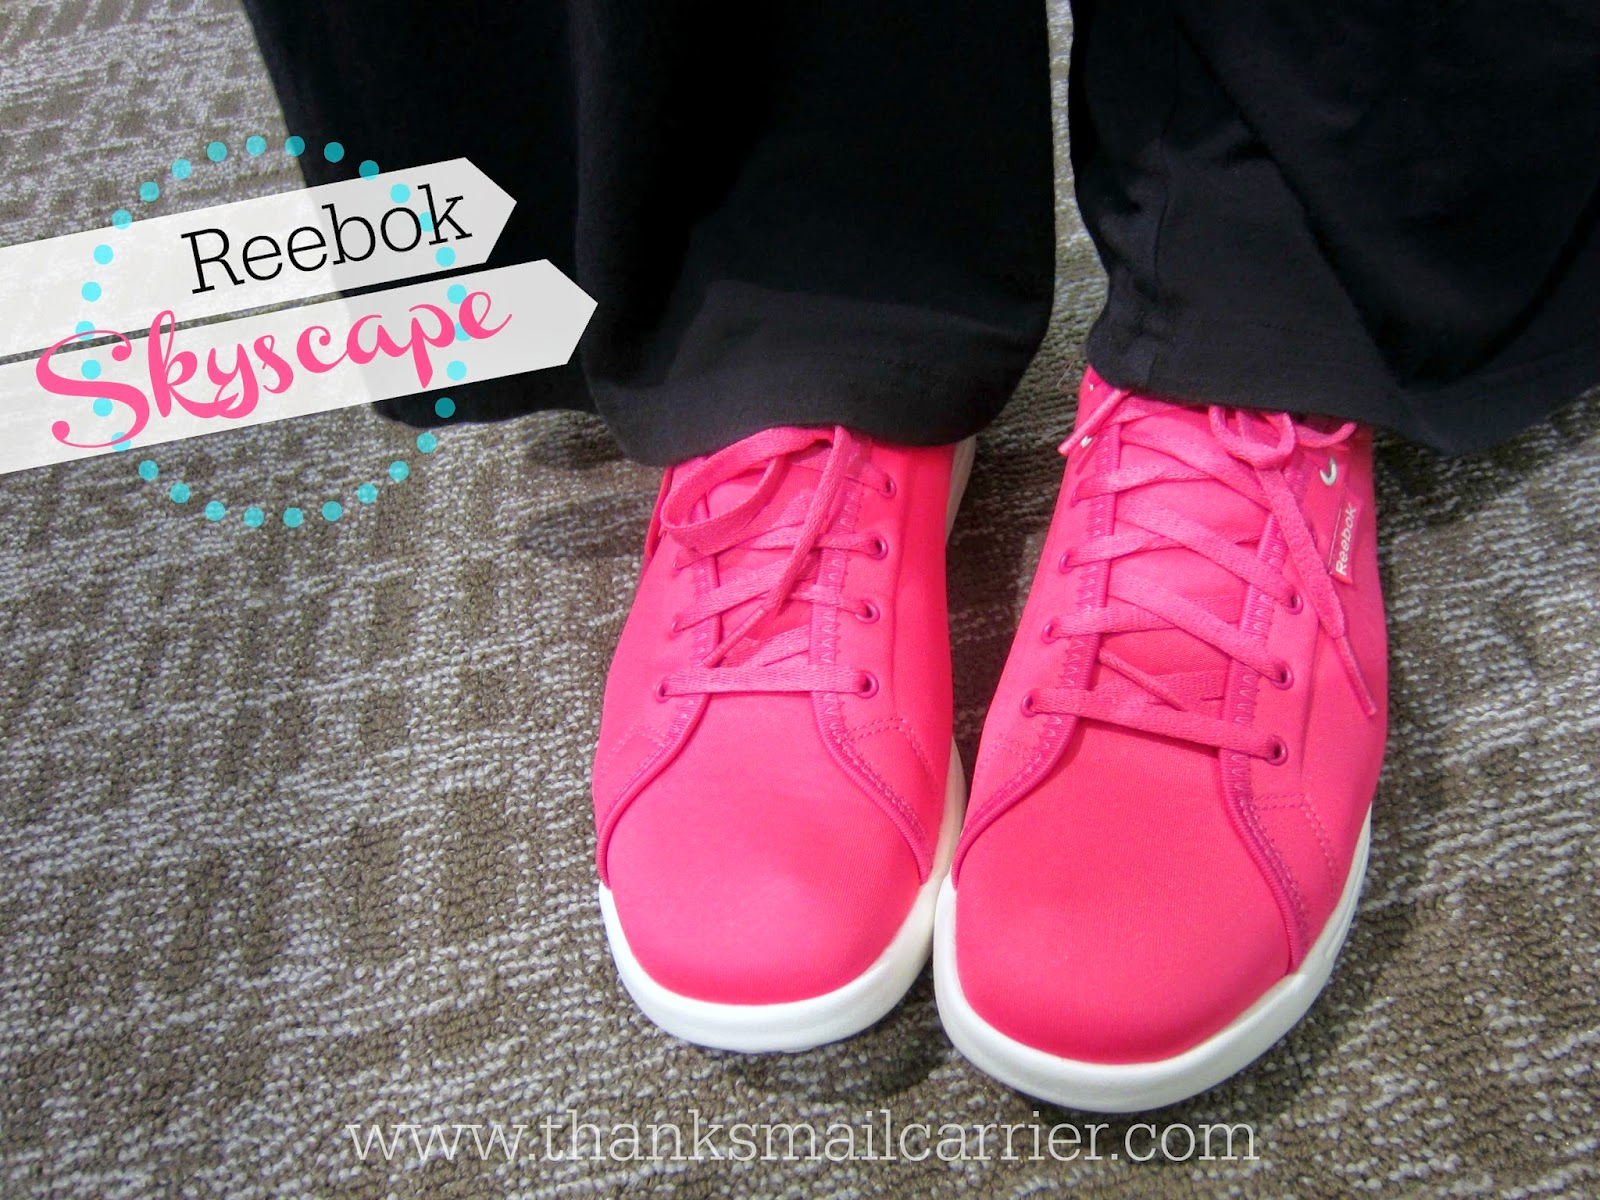 Reebok Skyscape review 5583f70c6